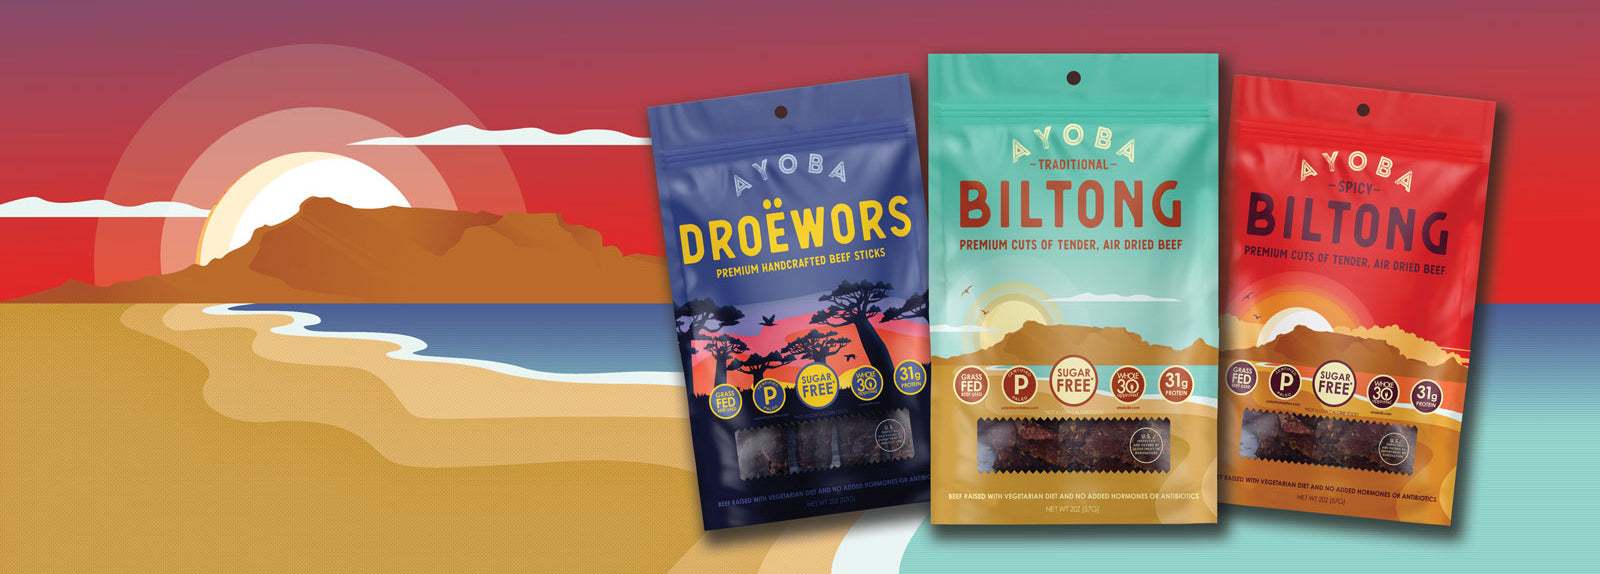 ayoba biltong droewors rebrand blog post with south africa scene